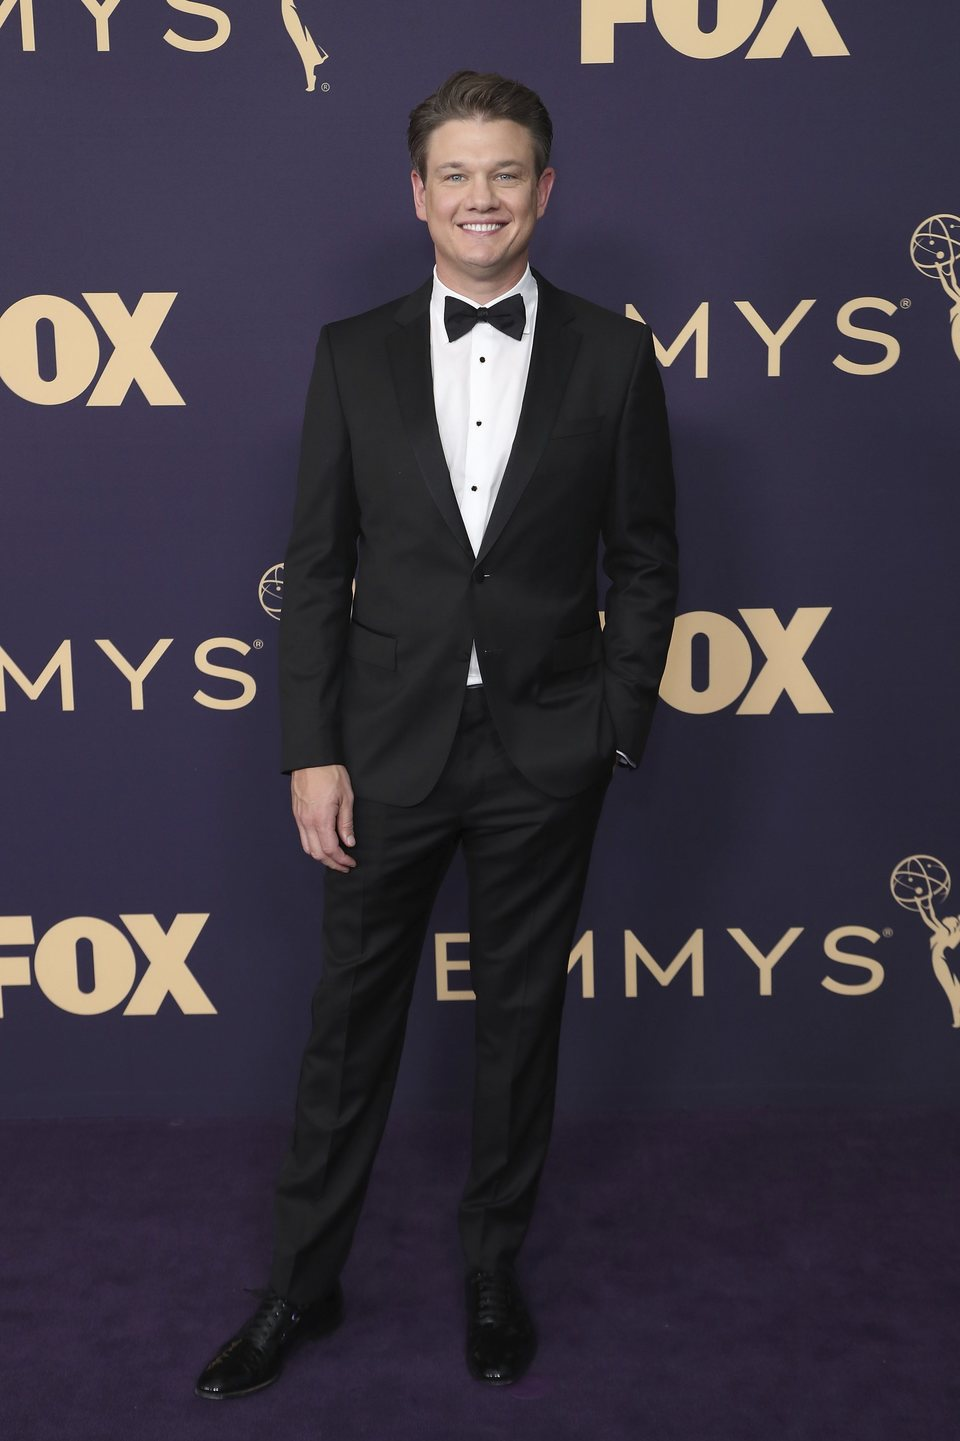 Brett Johnson at the Emmy 2019 red carpet